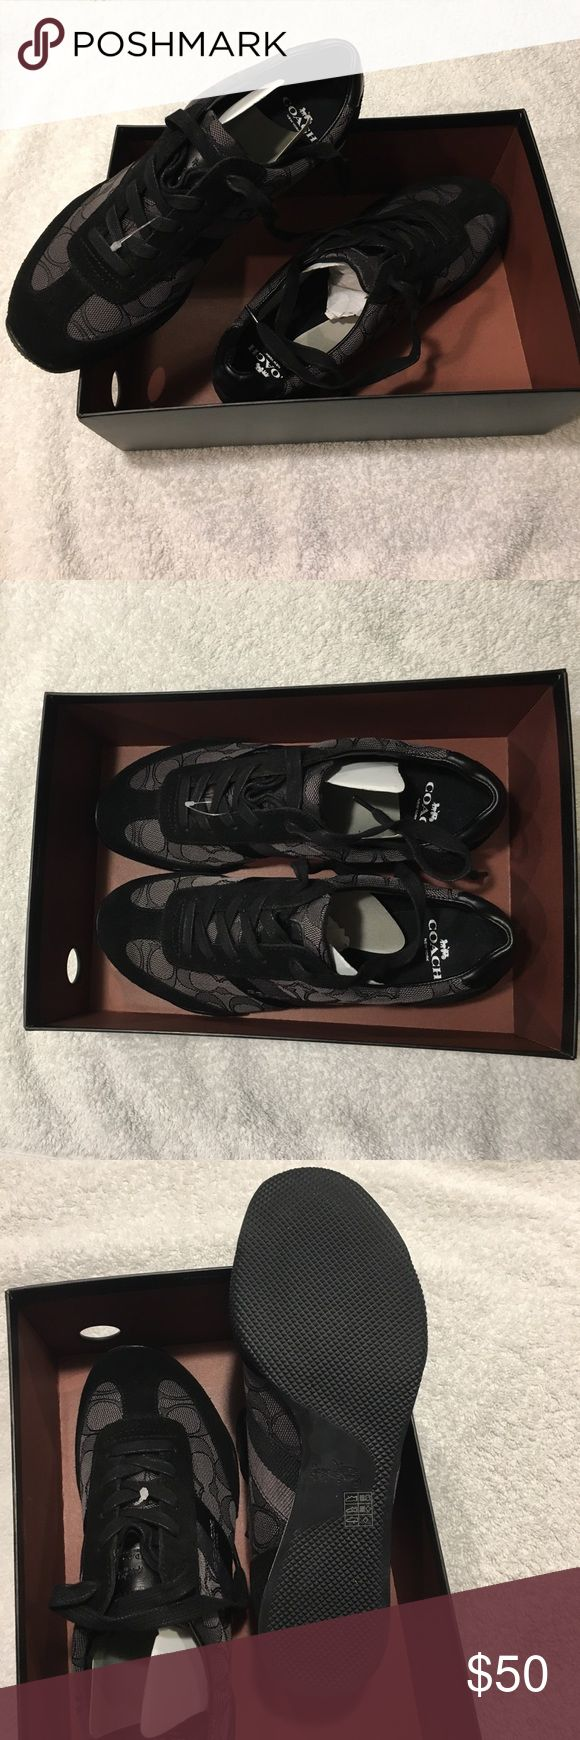 Coach sneakers New with tags! Never worn, Brand new Coach sneakers. In original box. Very comfortable! Coach Shoes Athletic Shoes